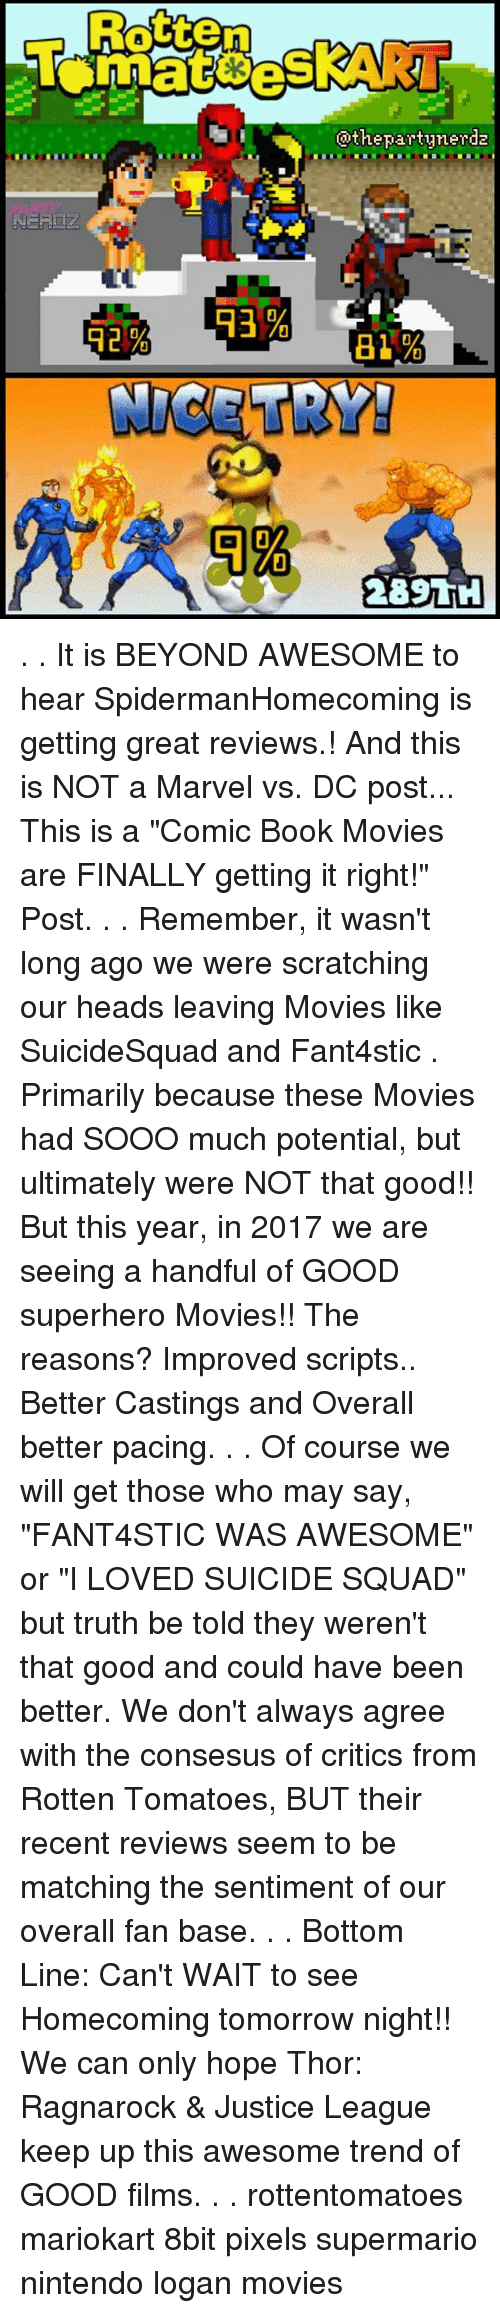 """mariokart: Rotten  @thepartynerda . . It is BEYOND AWESOME to hear SpidermanHomecoming is getting great reviews.! And this is NOT a Marvel vs. DC post... This is a """"Comic Book Movies are FINALLY getting it right!"""" Post. . . Remember, it wasn't long ago we were scratching our heads leaving Movies like SuicideSquad and Fant4stic . Primarily because these Movies had SOOO much potential, but ultimately were NOT that good!! But this year, in 2017 we are seeing a handful of GOOD superhero Movies!! The reasons? Improved scripts.. Better Castings and Overall better pacing. . . Of course we will get those who may say, """"FANT4STIC WAS AWESOME"""" or """"I LOVED SUICIDE SQUAD"""" but truth be told they weren't that good and could have been better. We don't always agree with the consesus of critics from Rotten Tomatoes, BUT their recent reviews seem to be matching the sentiment of our overall fan base. . . Bottom Line: Can't WAIT to see Homecoming tomorrow night!! We can only hope Thor: Ragnarock & Justice League keep up this awesome trend of GOOD films. . . rottentomatoes mariokart 8bit pixels supermario nintendo logan movies"""